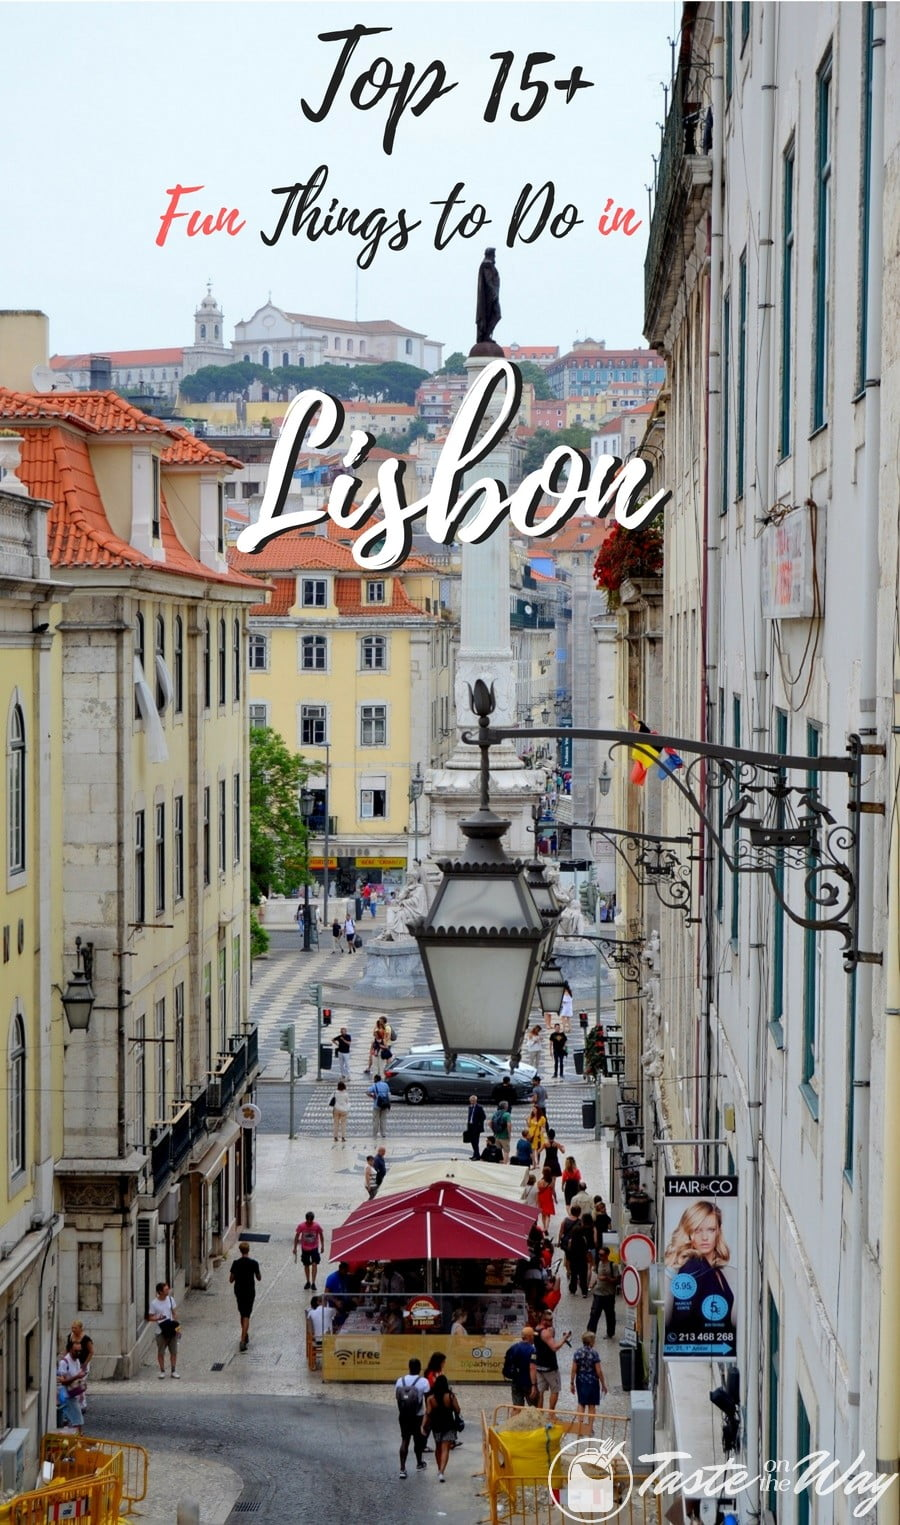 Check out the top 15+ fun #thingstodo in #Lisbon, #Portugal #travel #photography @tasteontheway